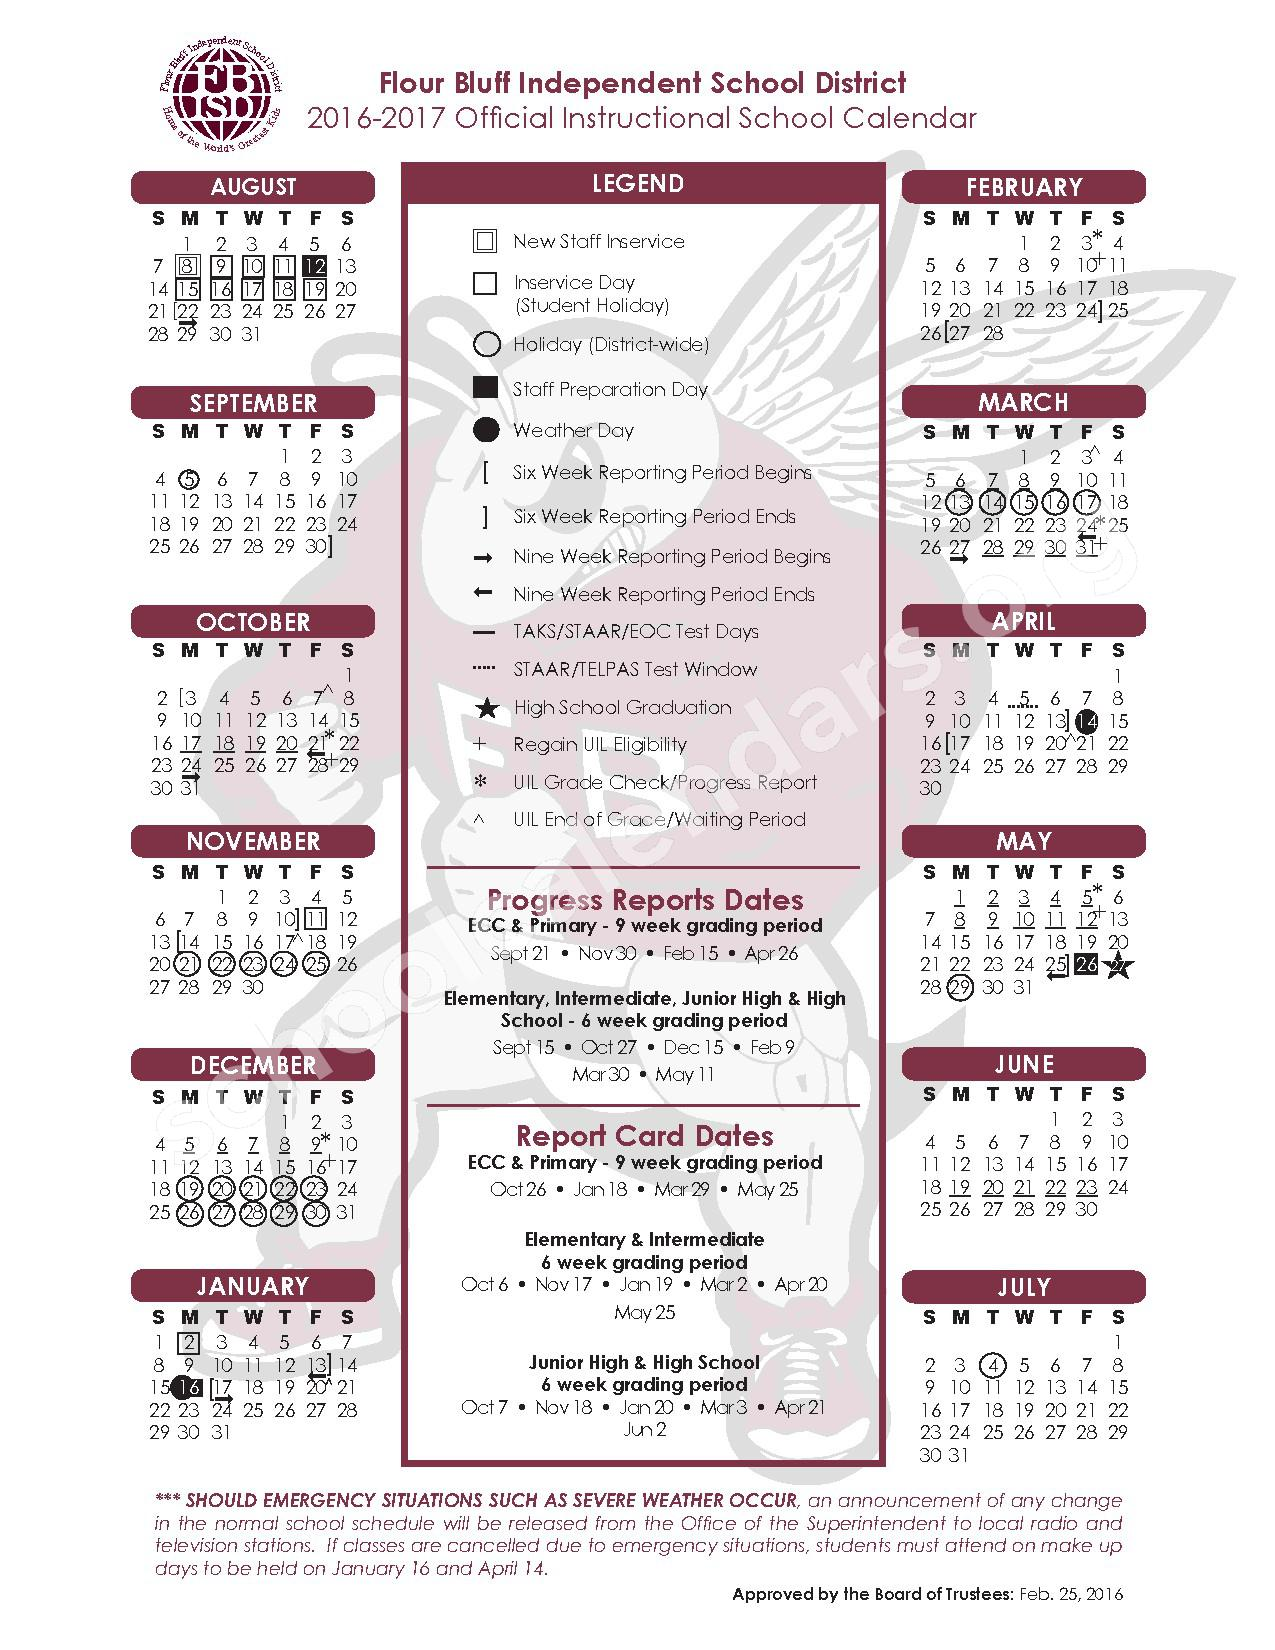 2016 - 2017 Flour Bluff ISD Calendar – Flour Bluff Independent School District – page 1